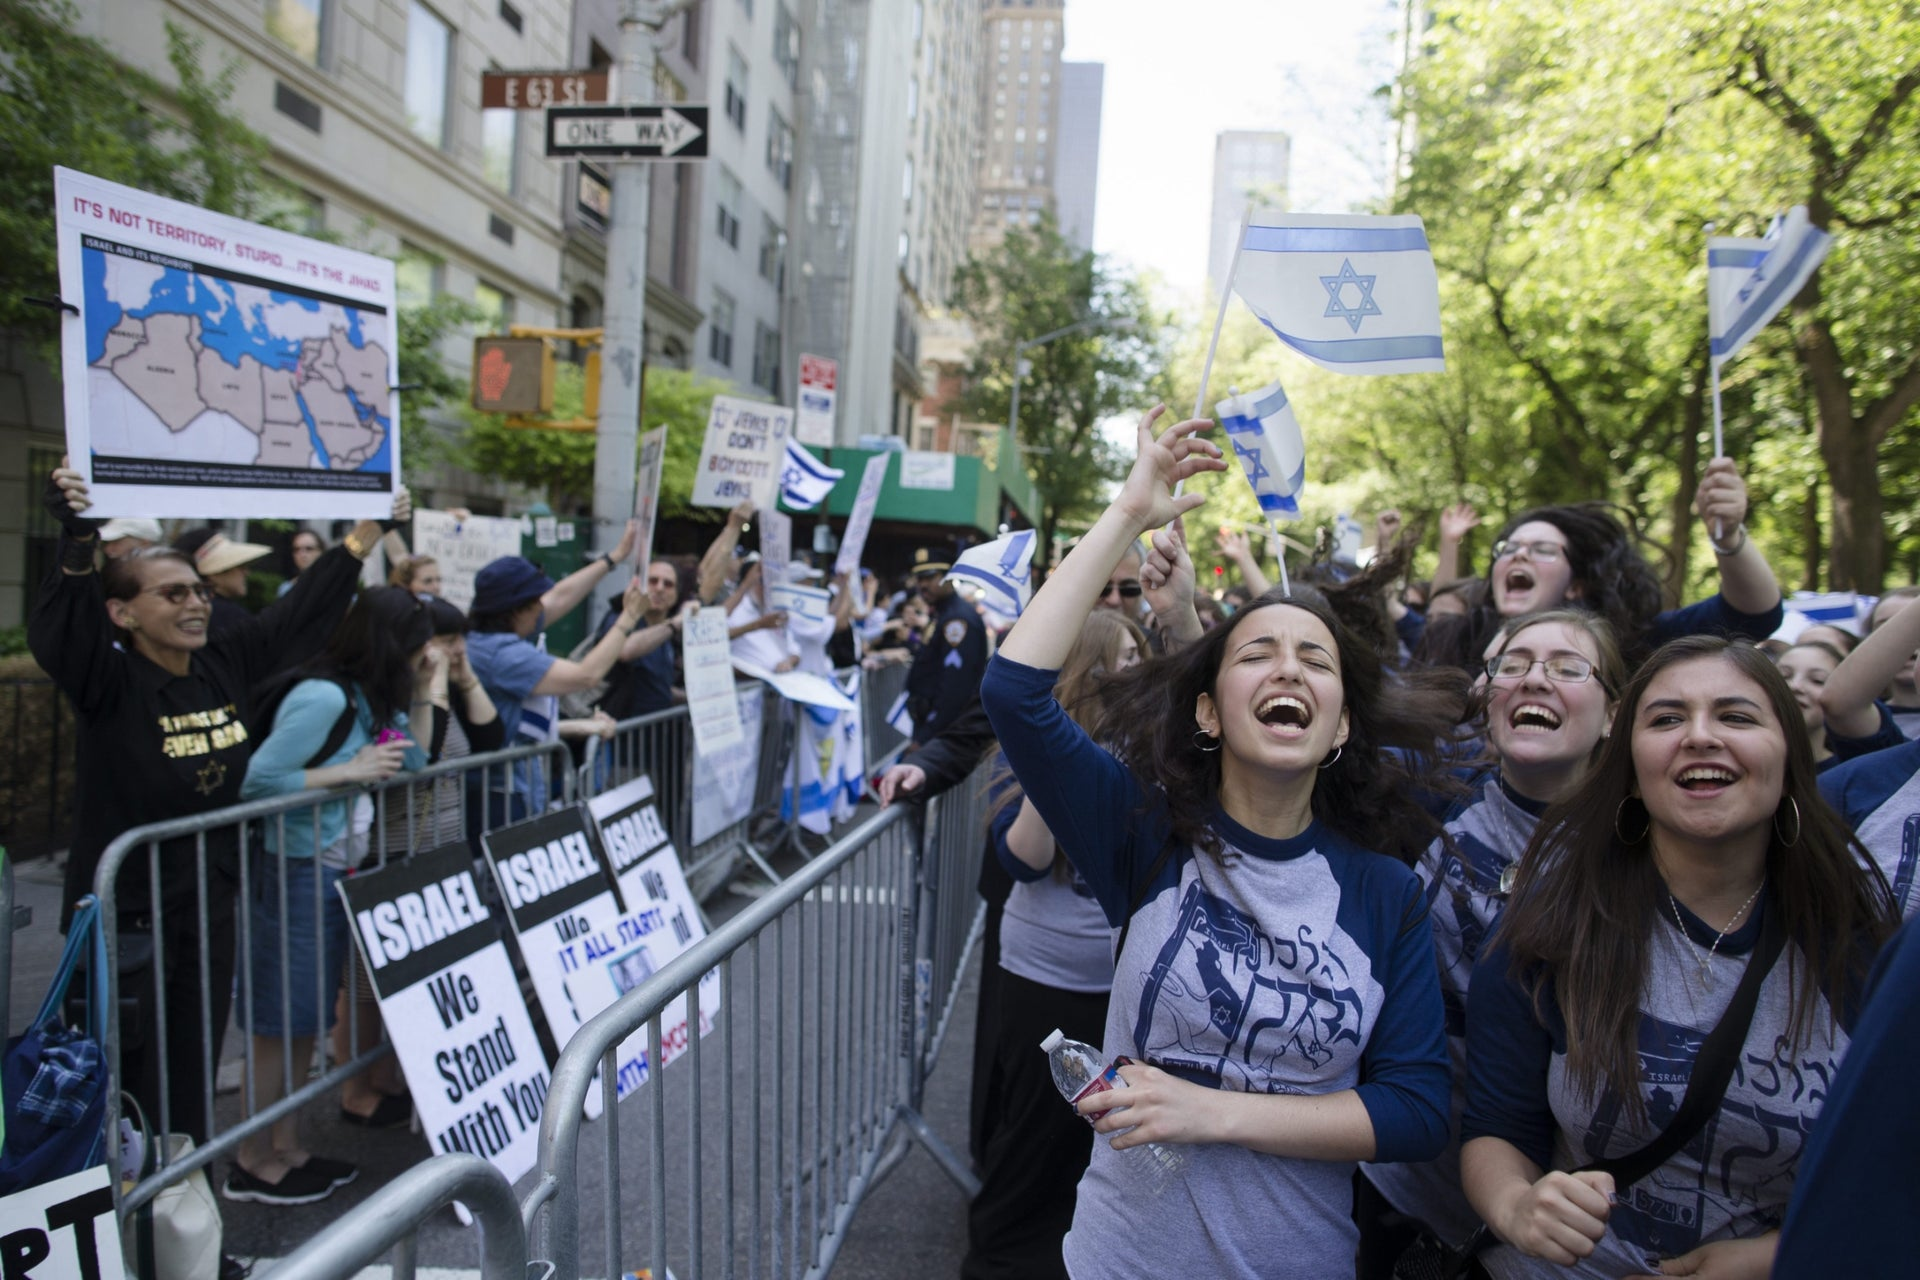 Pro-Israel marchers counter a BDS demonstration in New York.